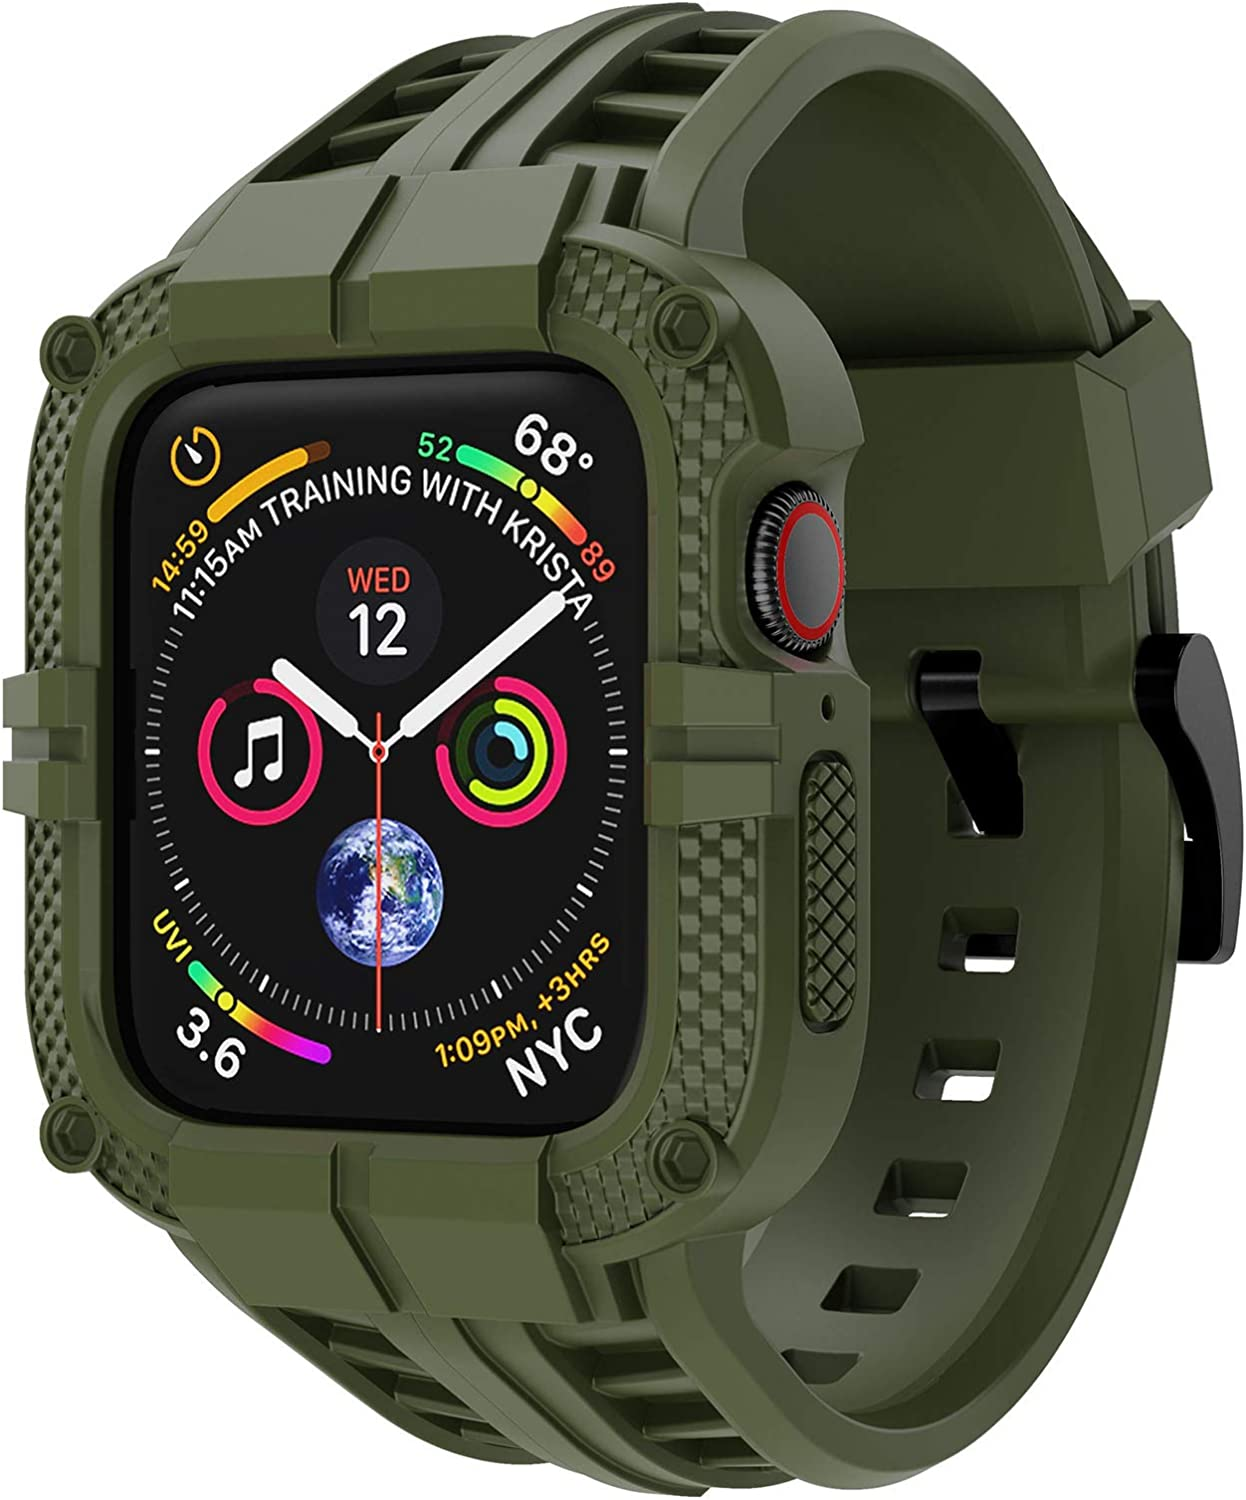 T-ENGINE Band Compatible with Apple Watch Band 40mm 38mm Series 6 Series 5/4/SE Series 3/2/1, TPU Rugged Band with Full Protection Case for Women/Men, Army Green